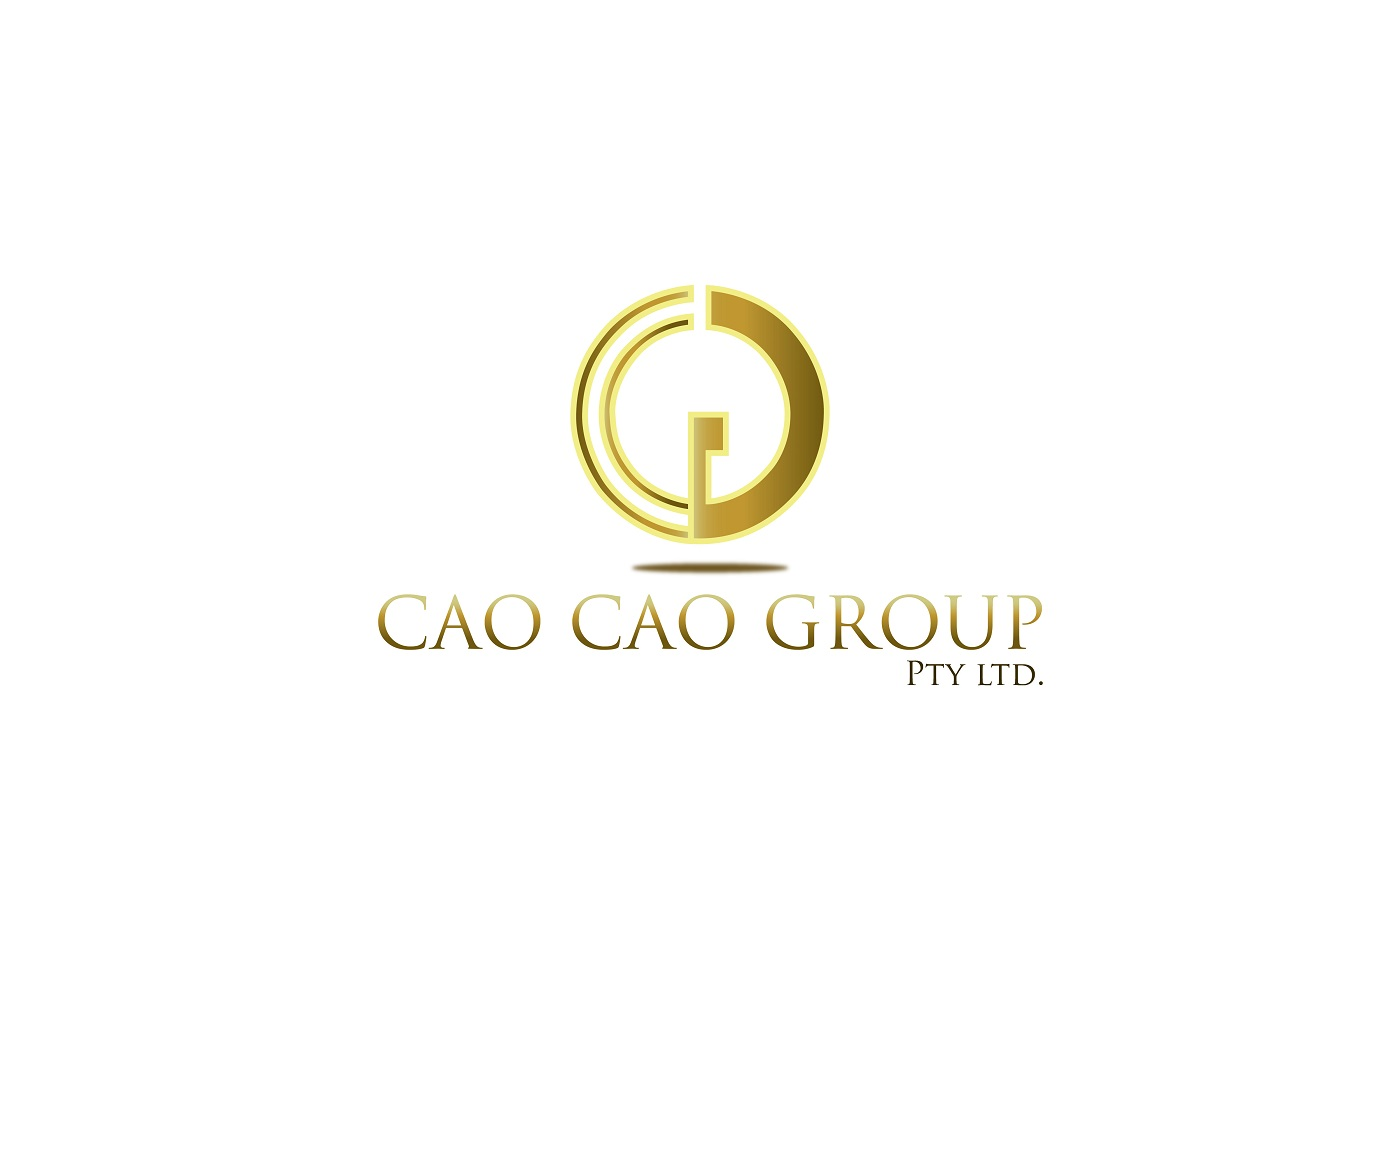 Logo Design by jhunzkie24 - Entry No. 91 in the Logo Design Contest cao cao group pty ltd Logo Design.